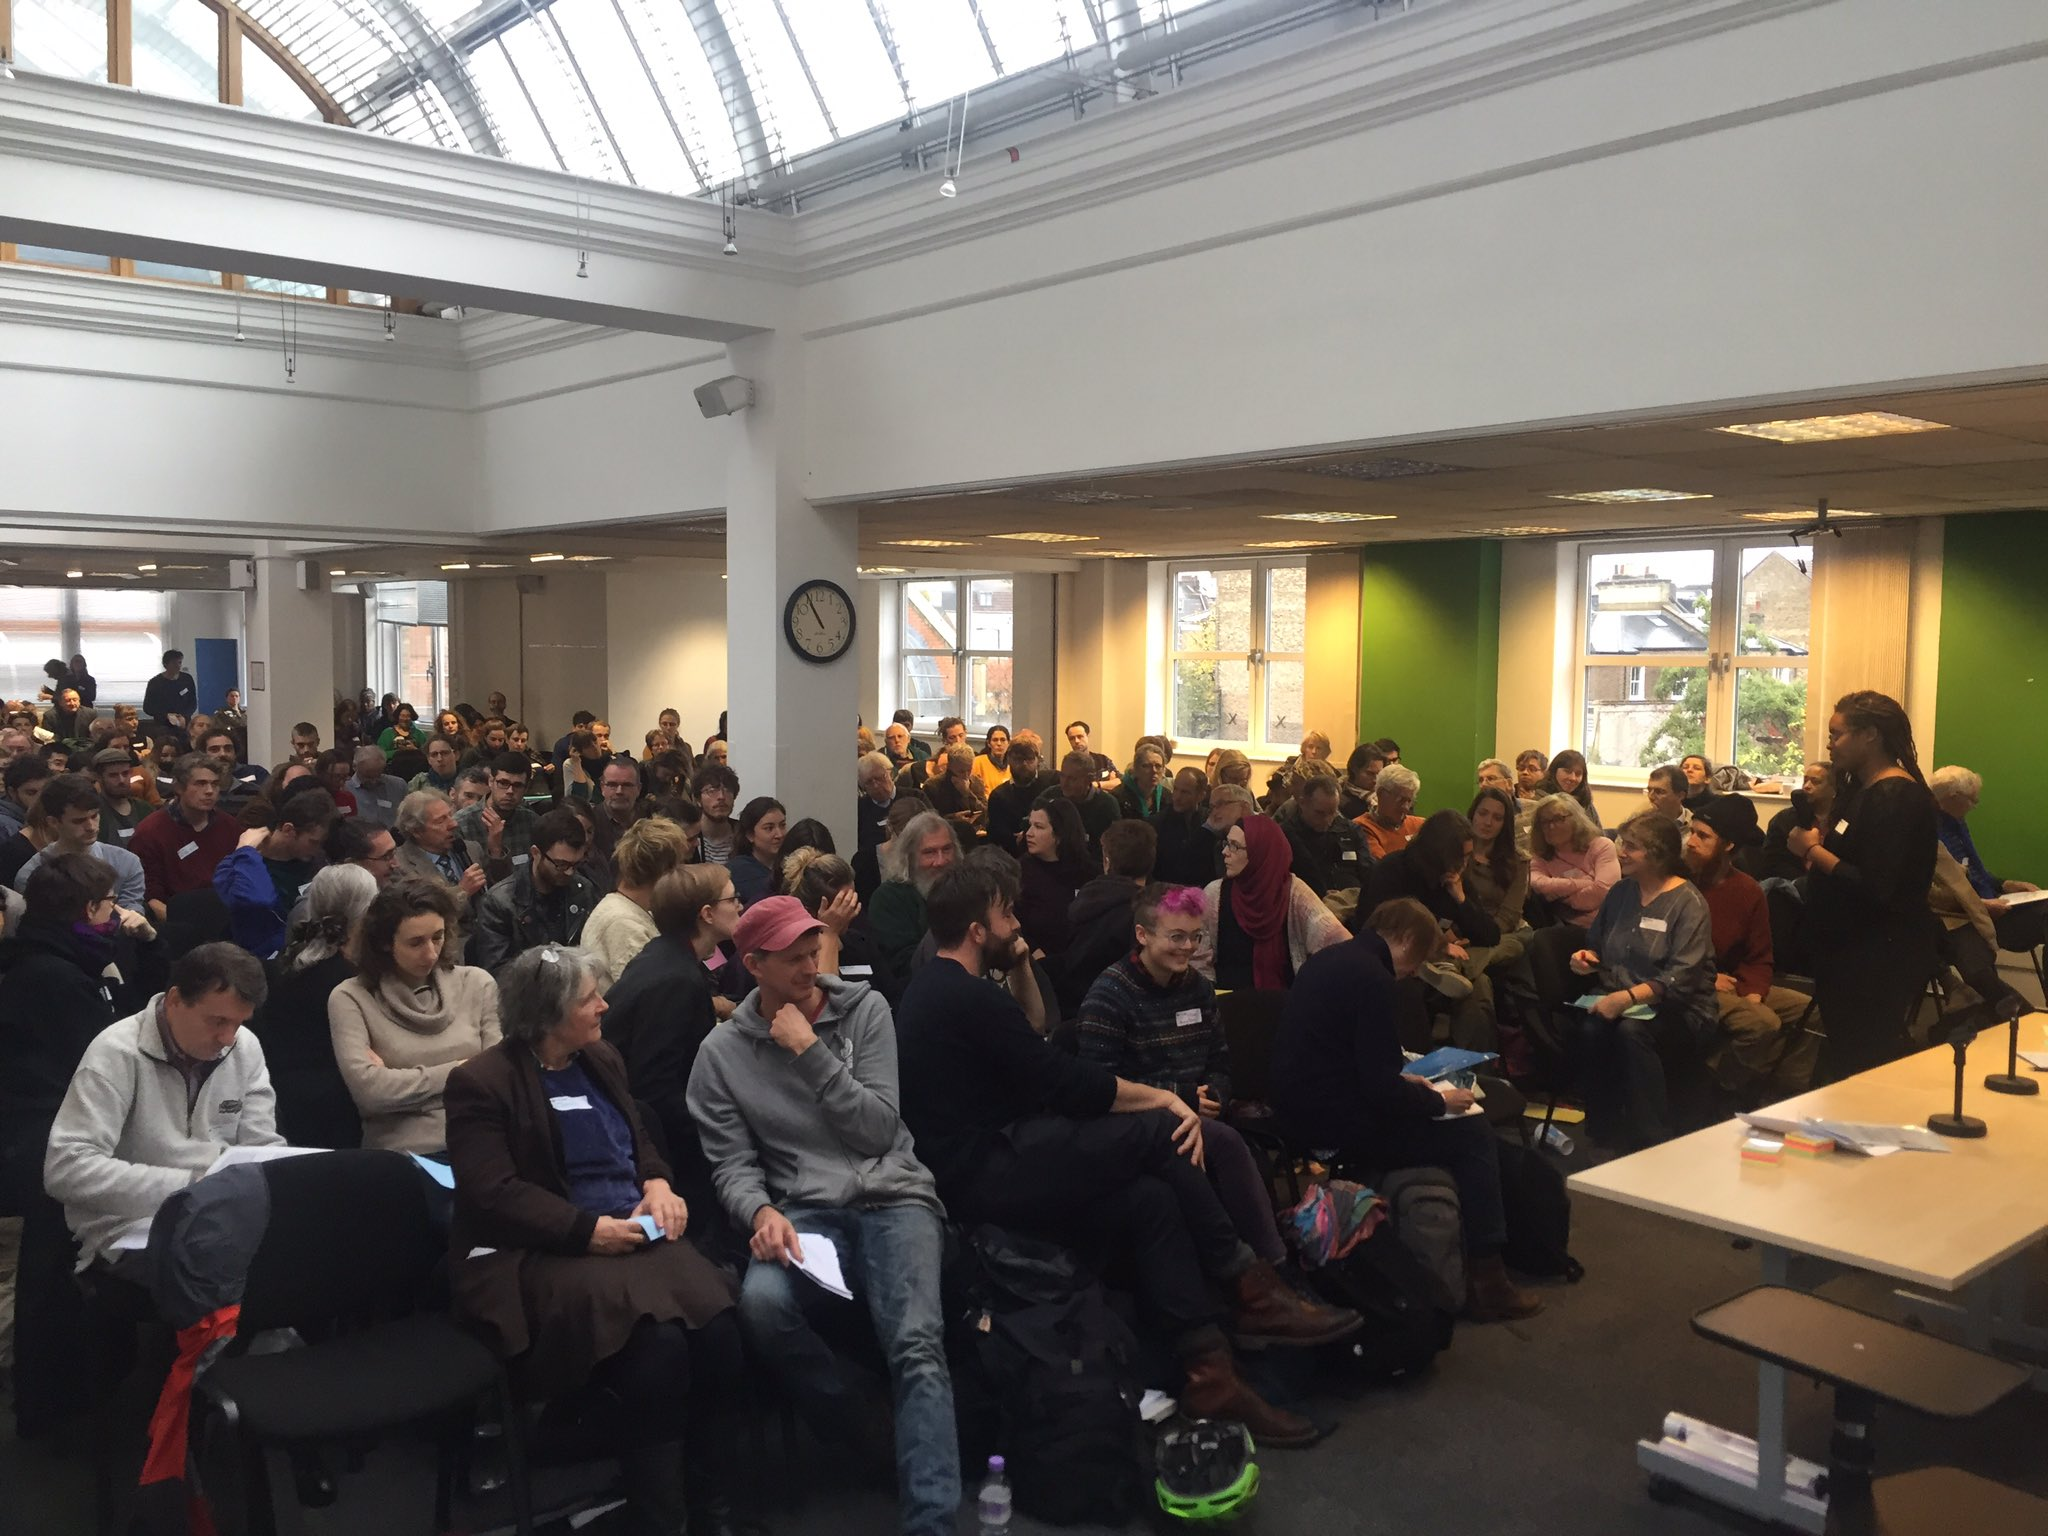 Jam-packed opening session of #landforwhat in north London this morning @landforwhat. See me for your copy of @TheLandMag https://t.co/G8DAyQwj5o